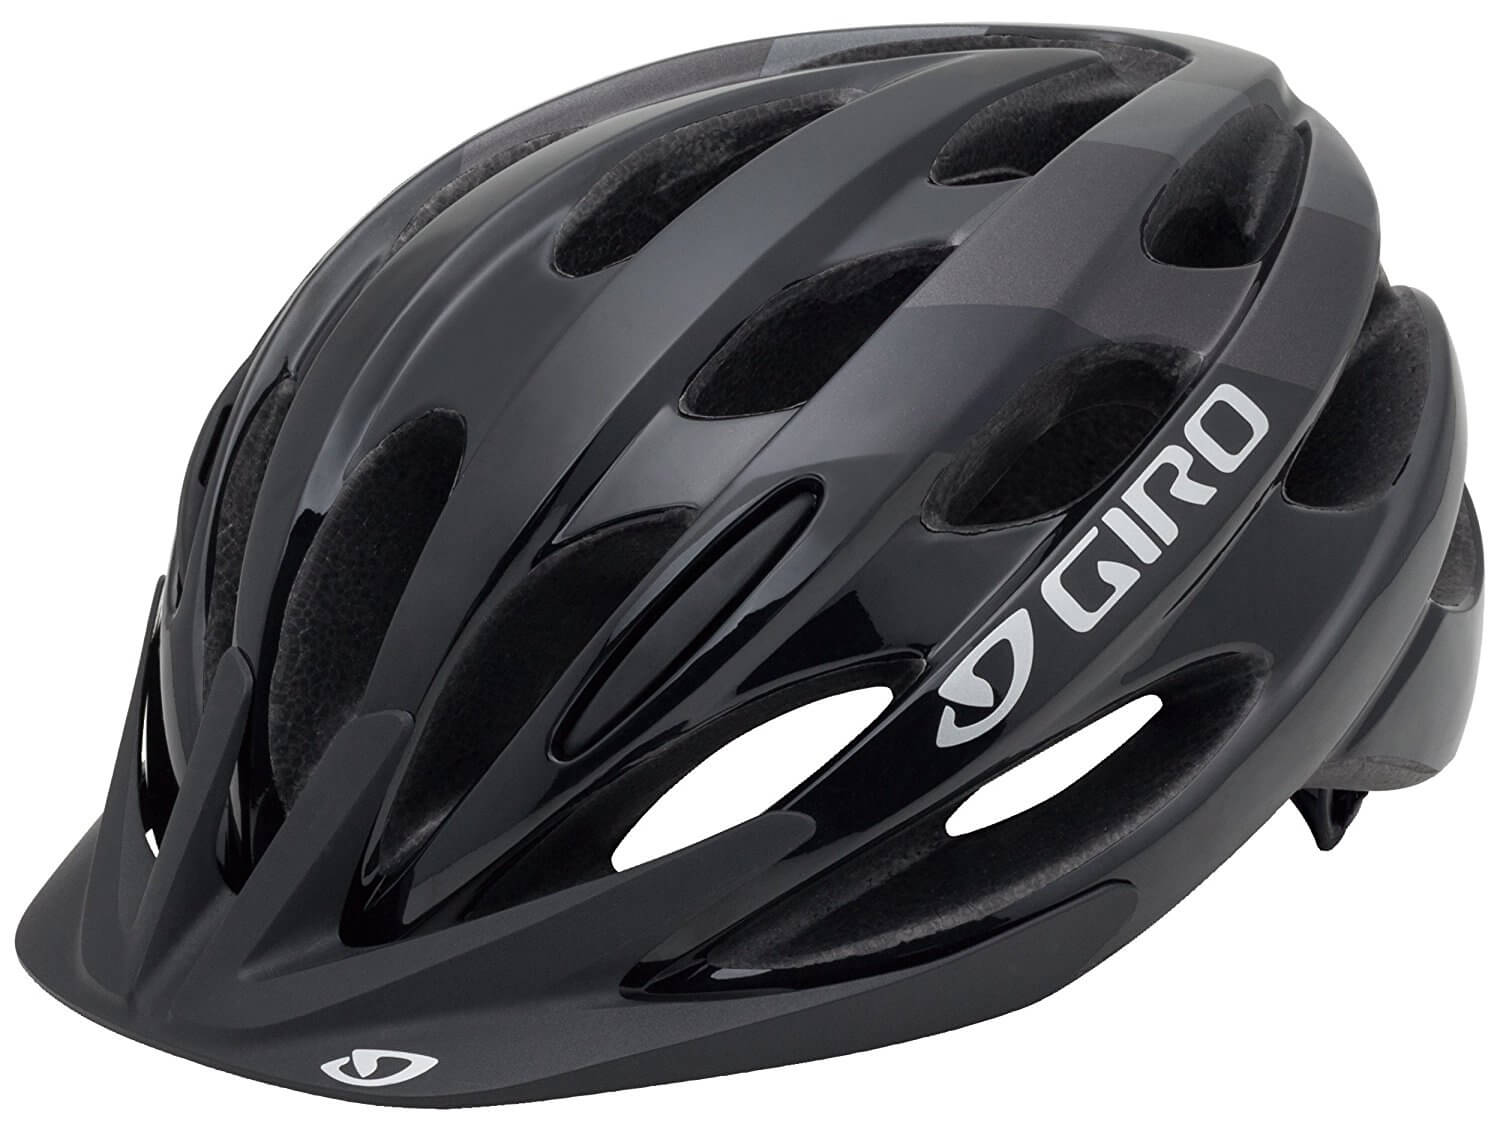 There is a reason new helmets are so coveted.